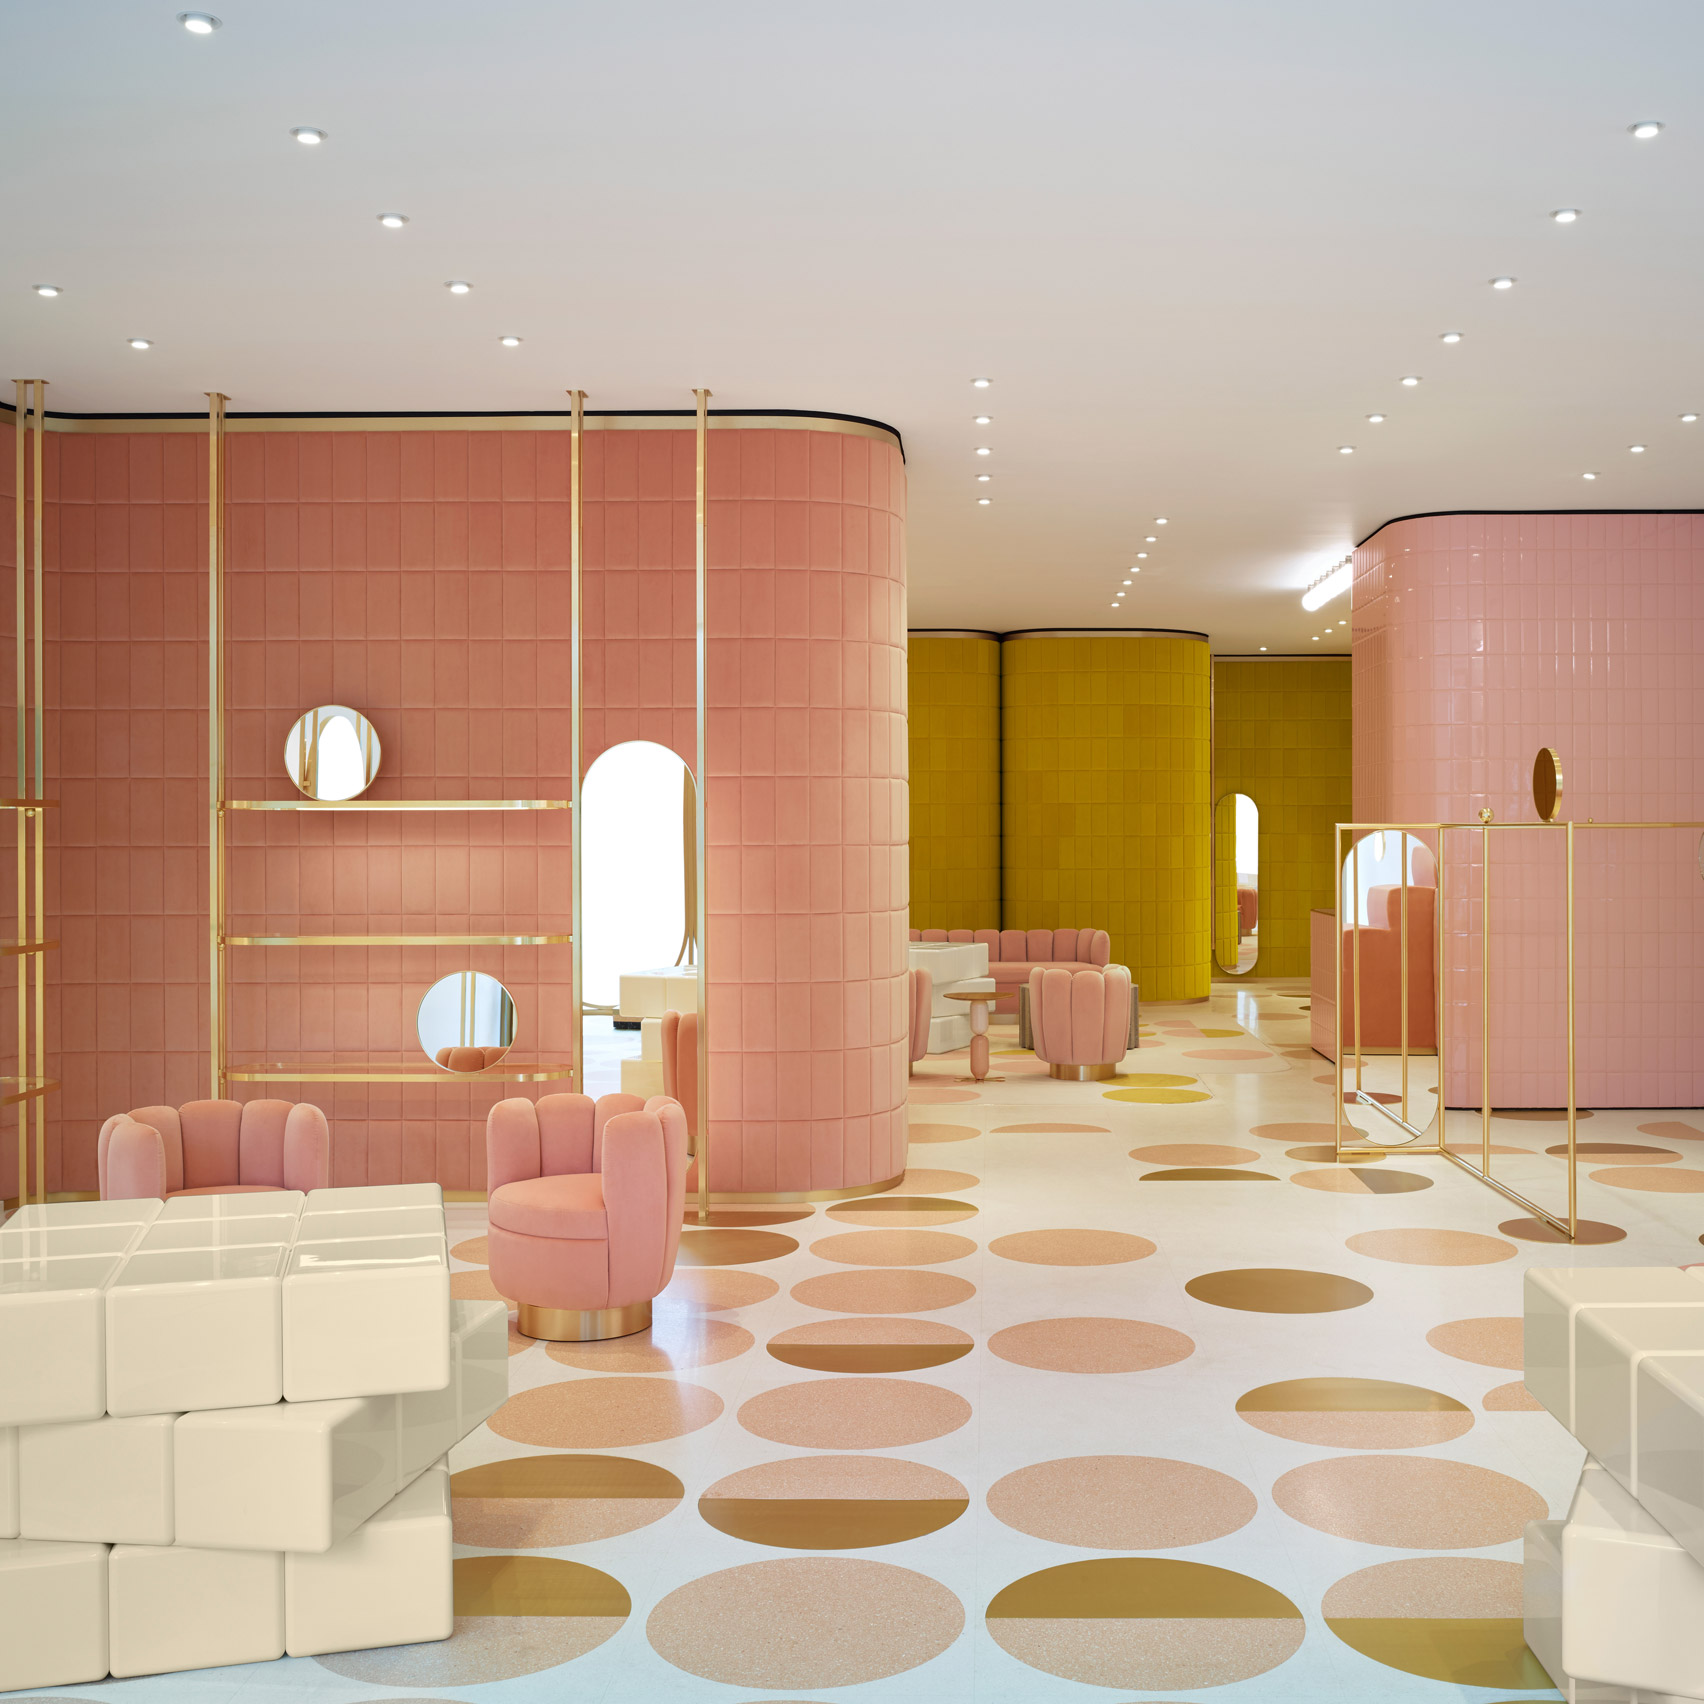 Five of the most appealing interior design roles on Dezeen Jobs this week